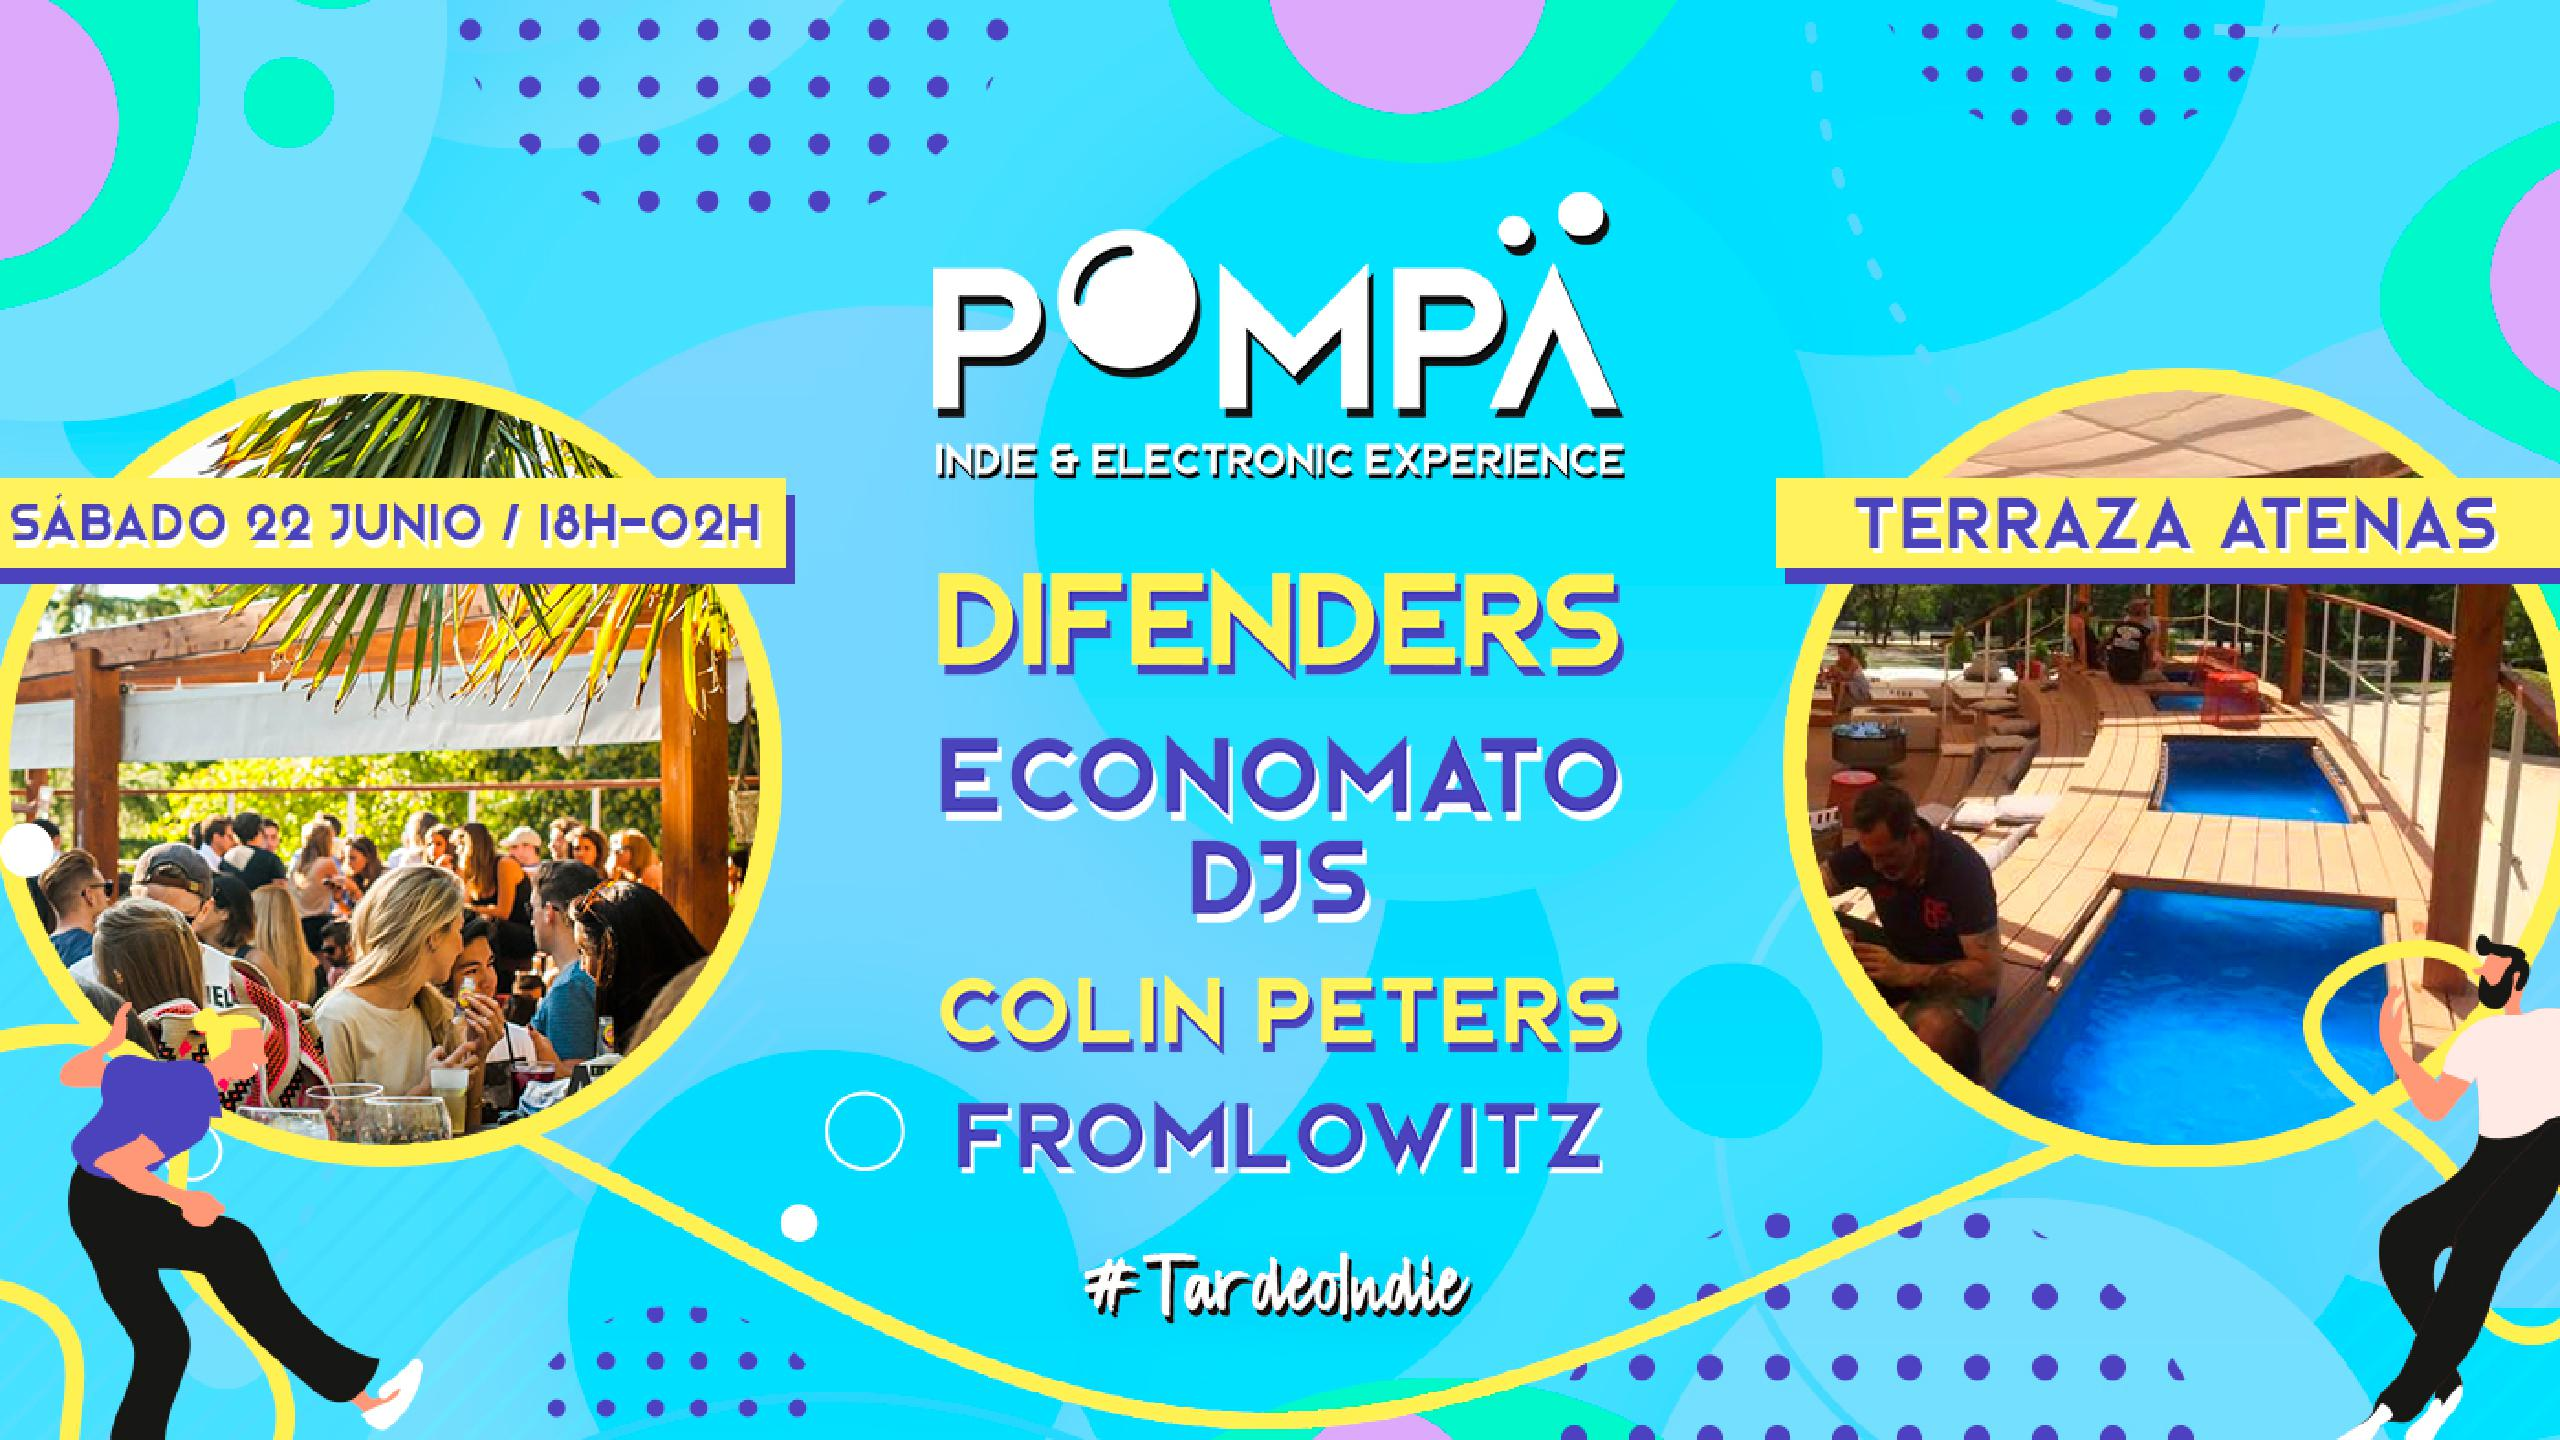 Fromlowitz Concert Tickets For Terraza Atenas Madrid